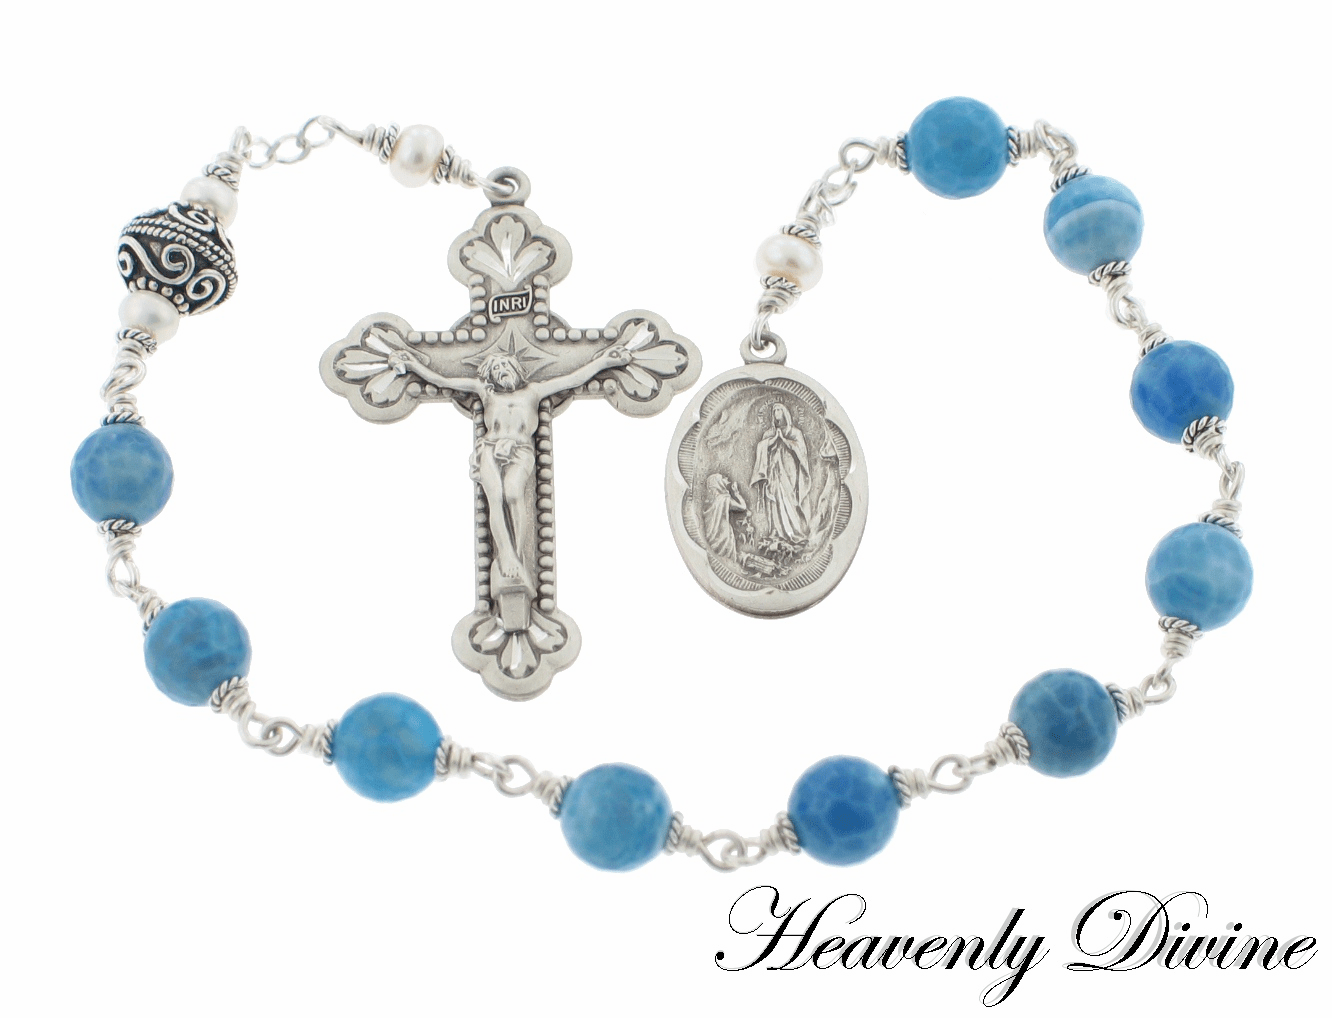 Handmade Sterling Silver Our Lady of Lourdes One Decade Rosary by Heavenly Divine